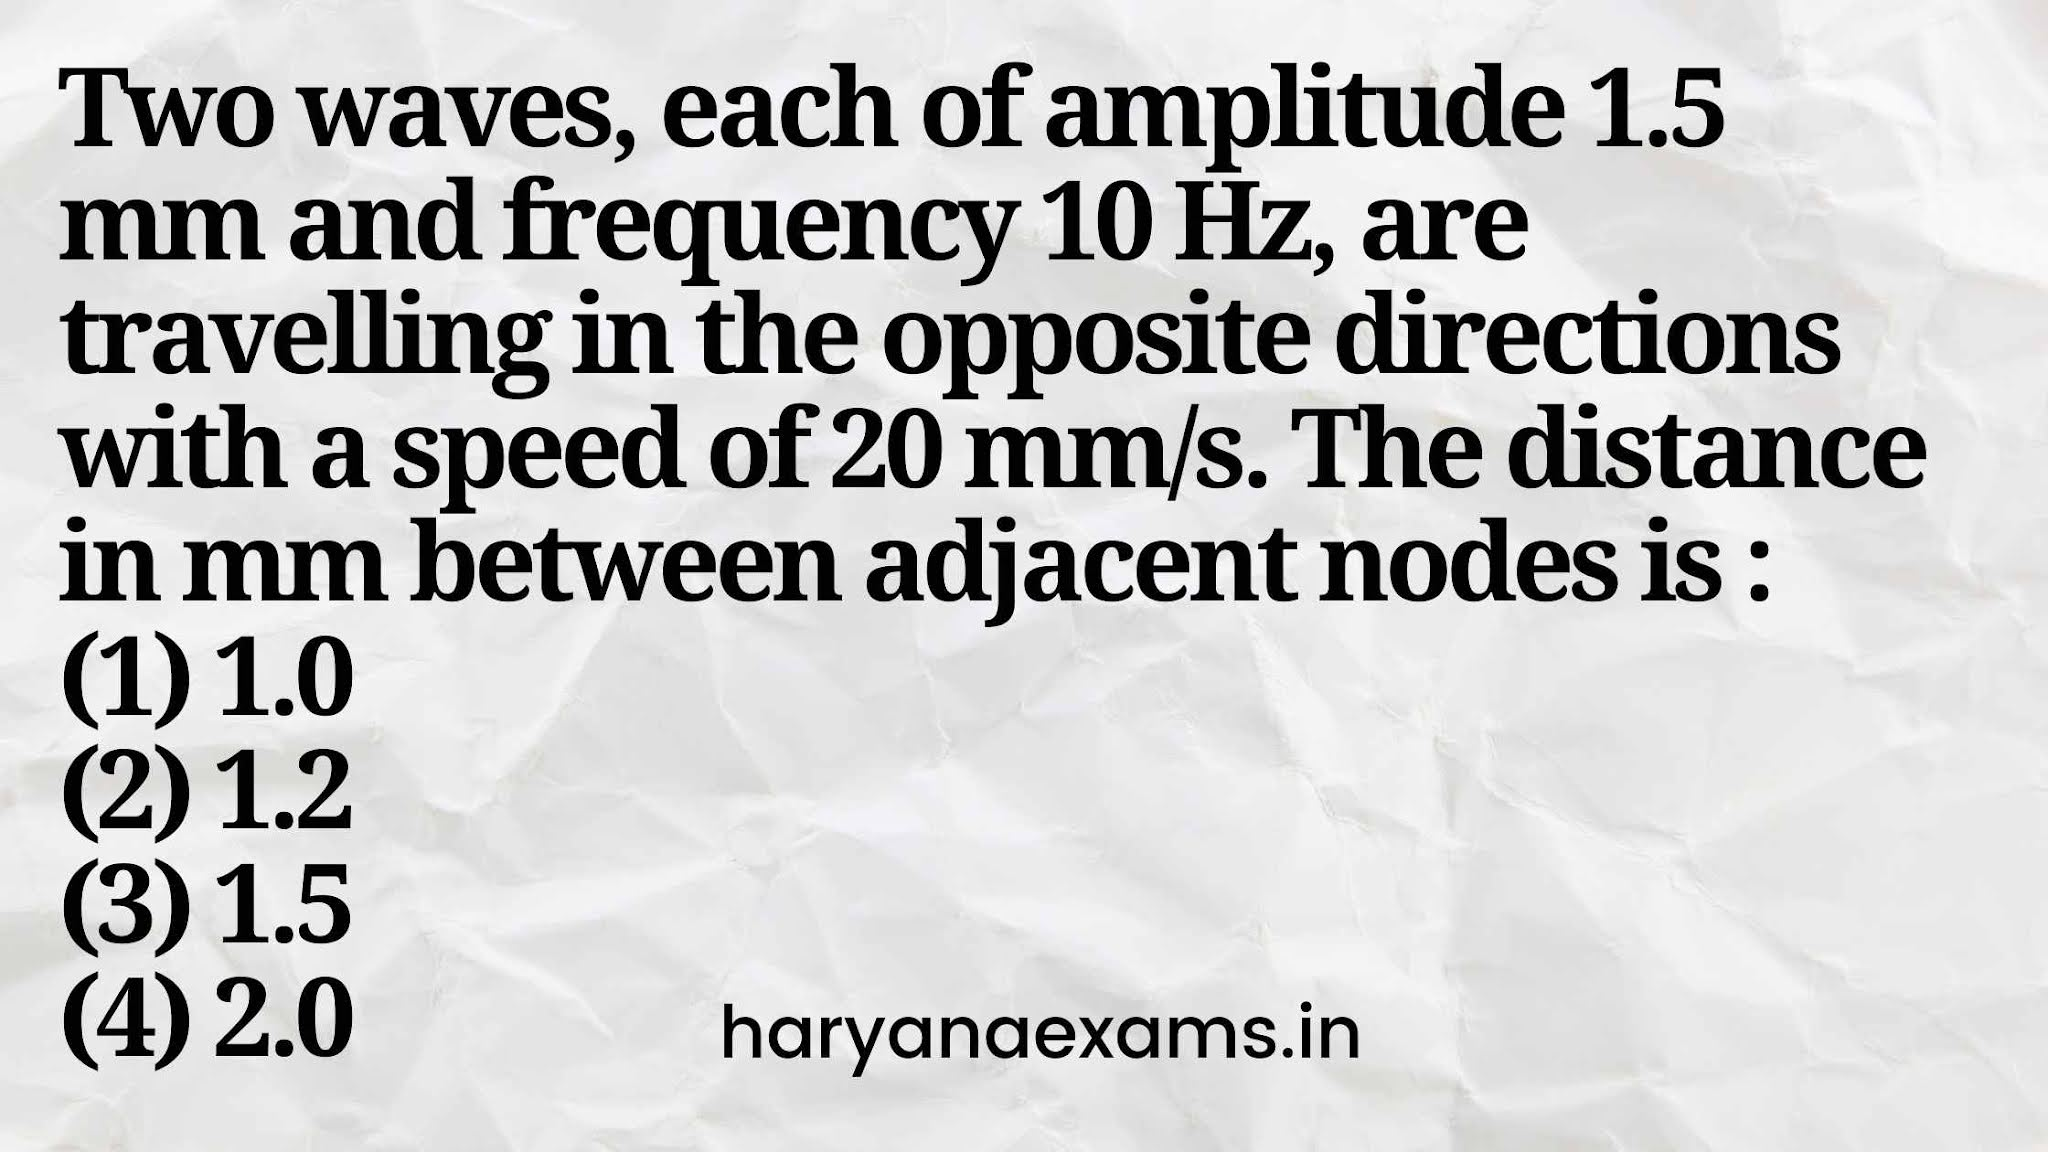 Two waves, each of amplitude 1.5 mm and frequency 10 Hz, are travelling in the opposite directions with a speed of 20 mm/s. The distance in mm between adjacent nodes is :   (1) 1.0   (2) 1.2   (3) 1.5   (4) 2.0